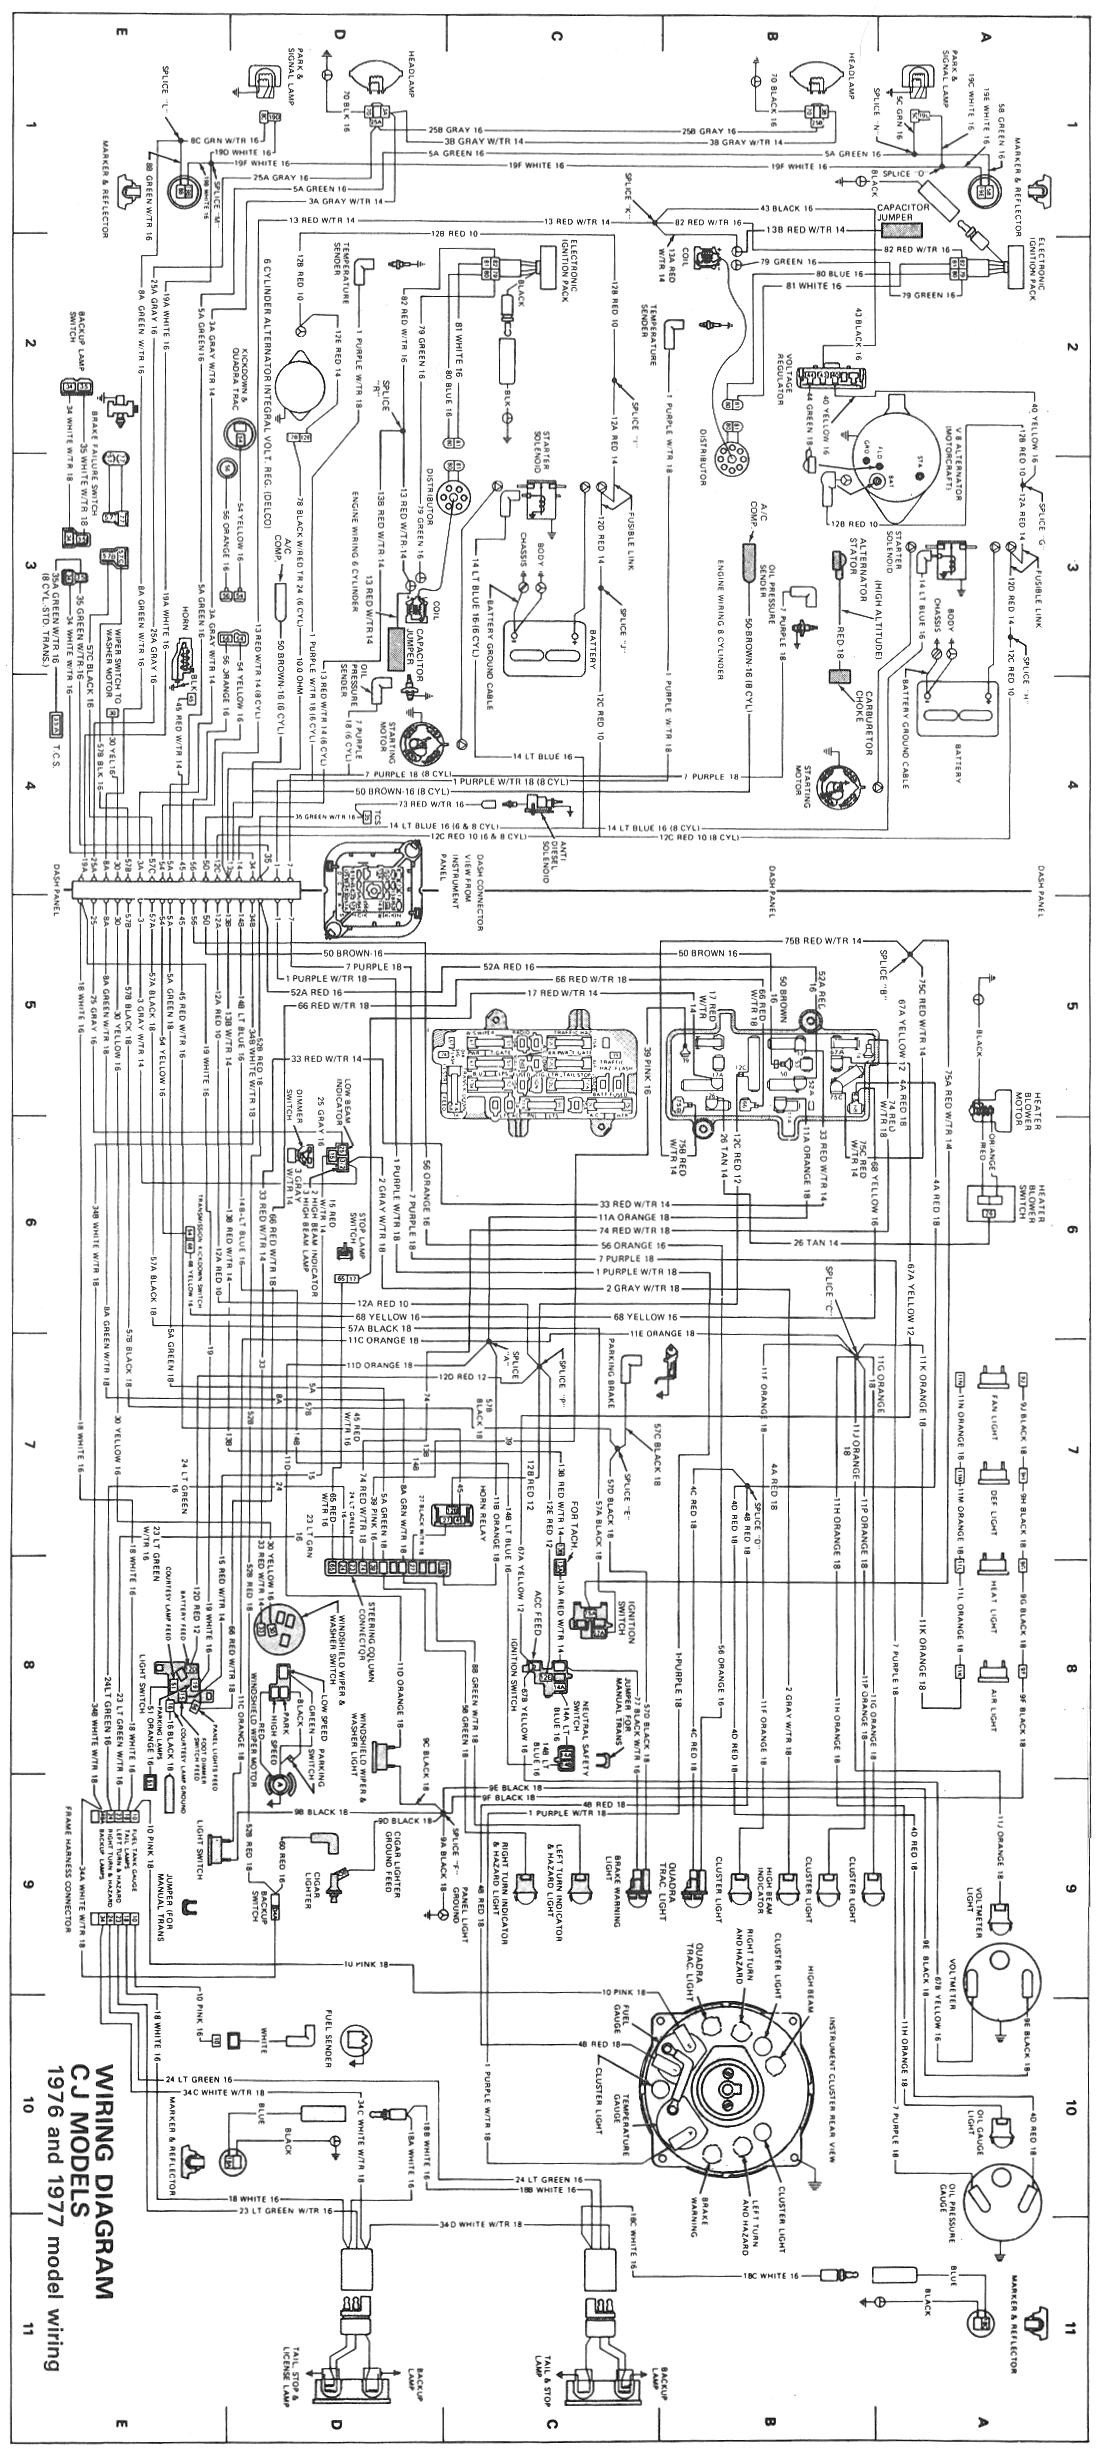 Jeep Cj7 Horn Wiring Diagram Data Buick Diagrams Speedometer Library Regal 79 Cj5